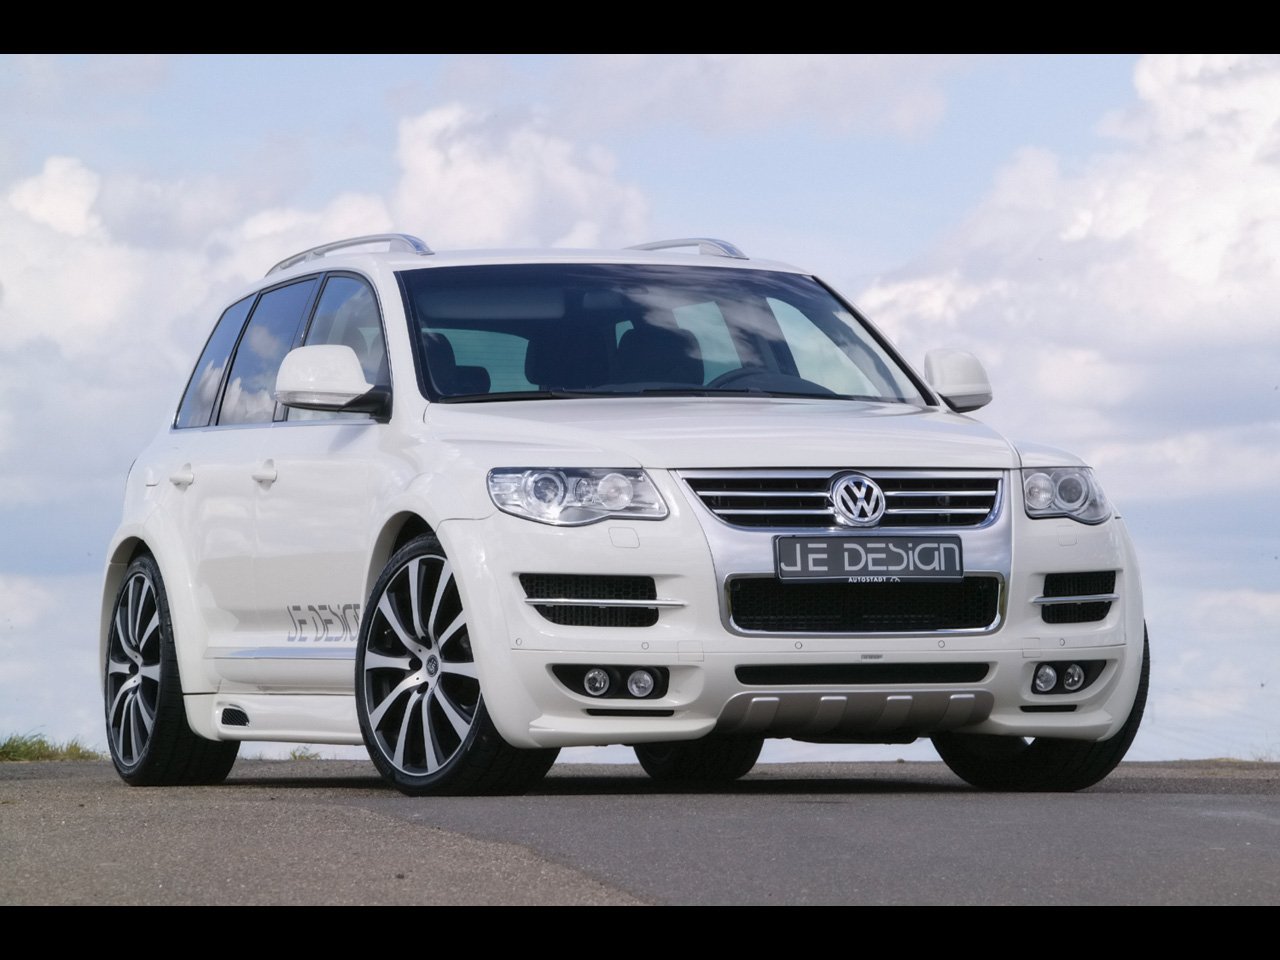 je design volkswagen touareg photos photogallery with 15 pics. Black Bedroom Furniture Sets. Home Design Ideas